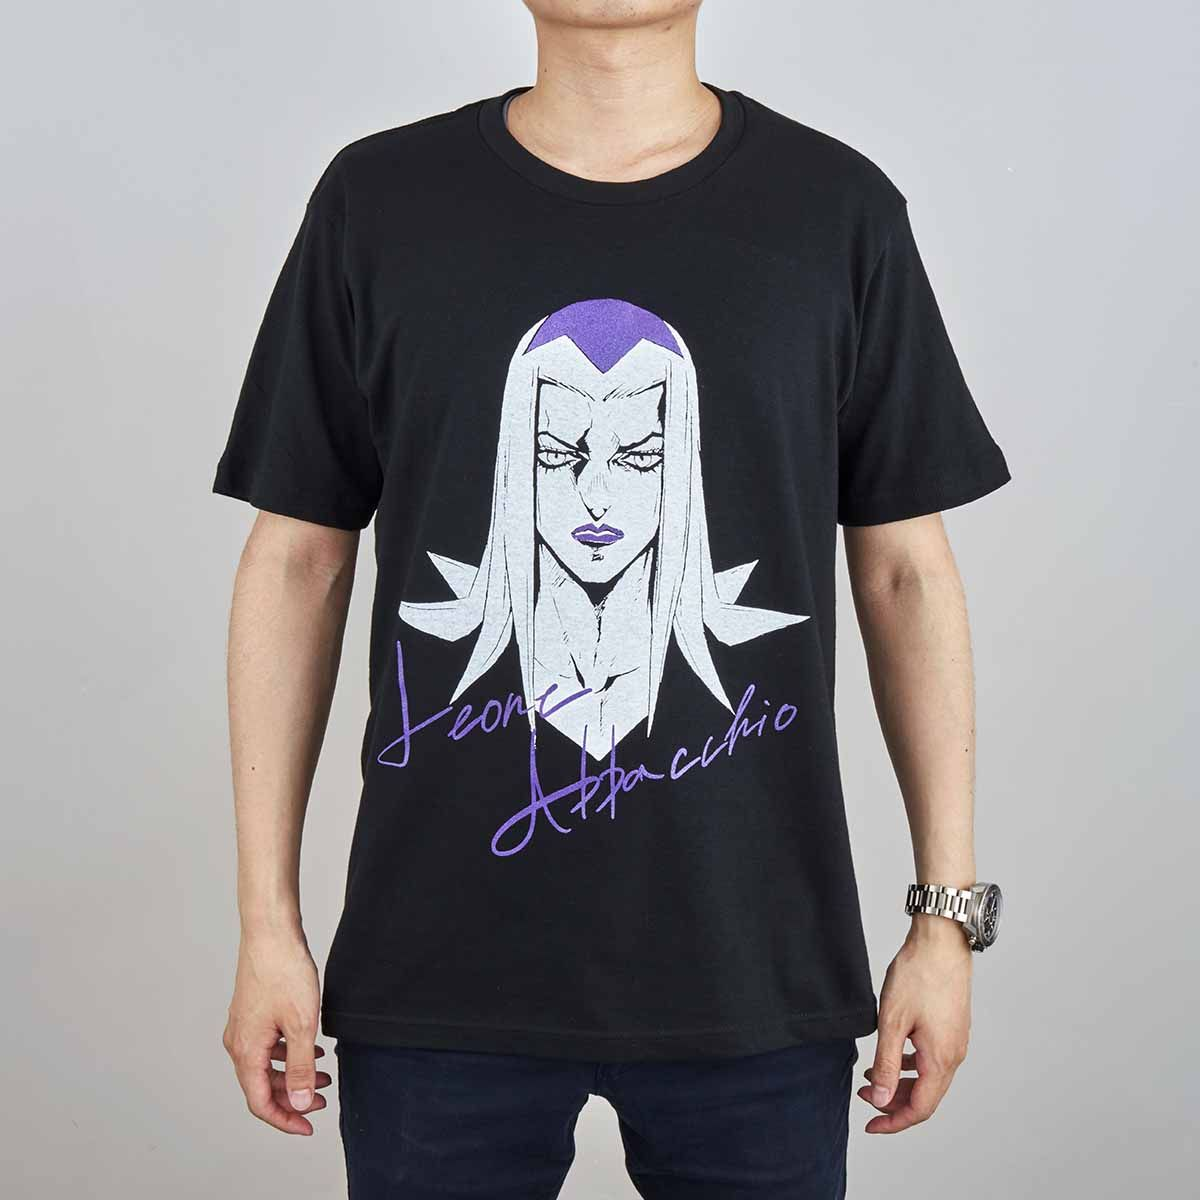 Team Bucciarati T-shirt (Abbacchio)—JoJo's Bizarre Adventure: Golden Wind